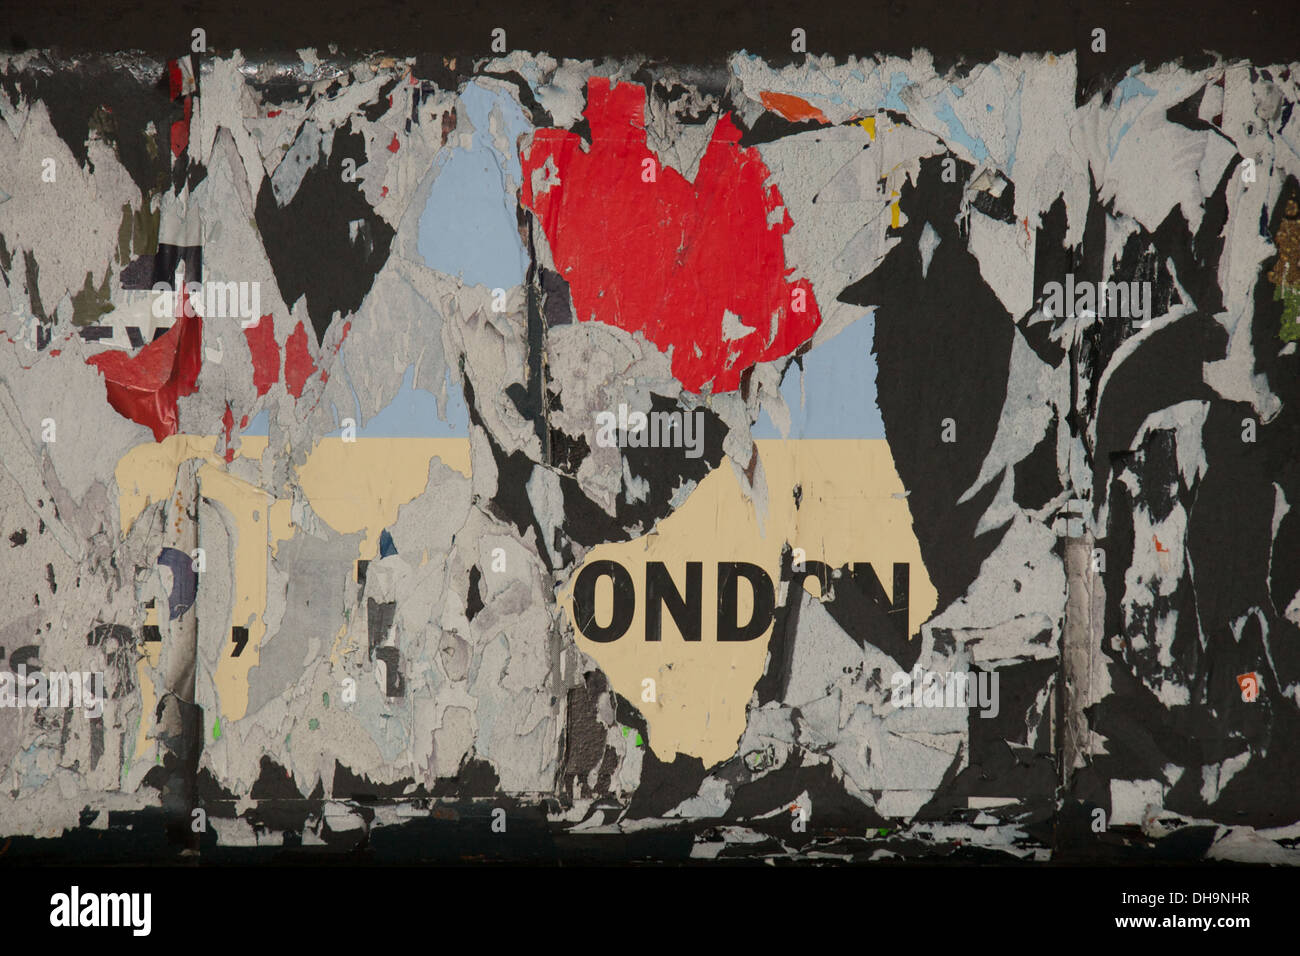 Peeling layers of paper advertising posters on London underground - Stock Image